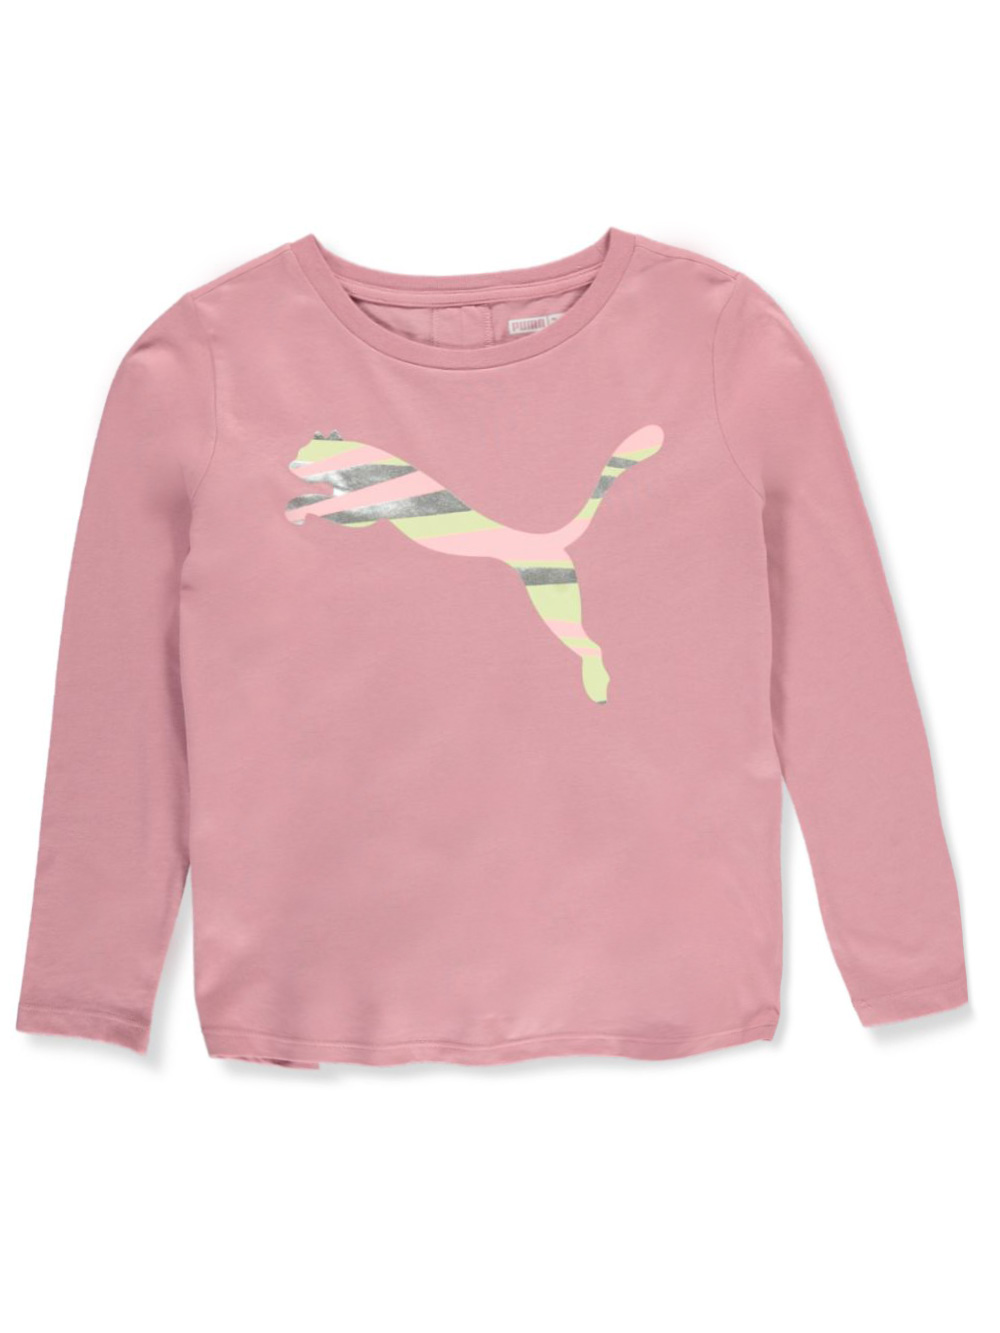 Size 8-10 Fashion Tops for Girls